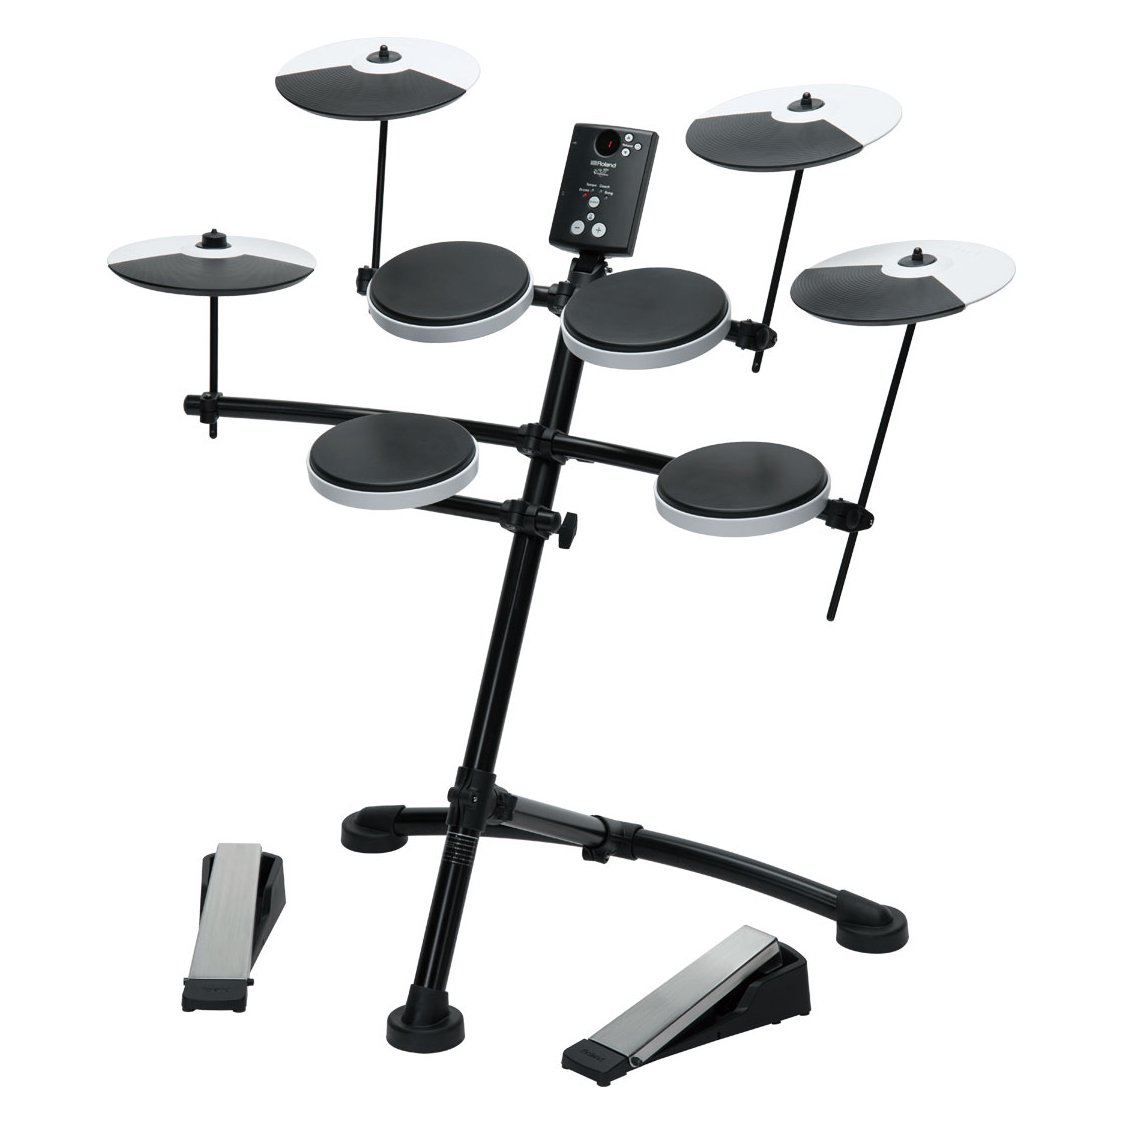 Roland TD-1K V Drums Portable 15 Kit Electronic Snare Tom Pad & Cymbal Drum Set